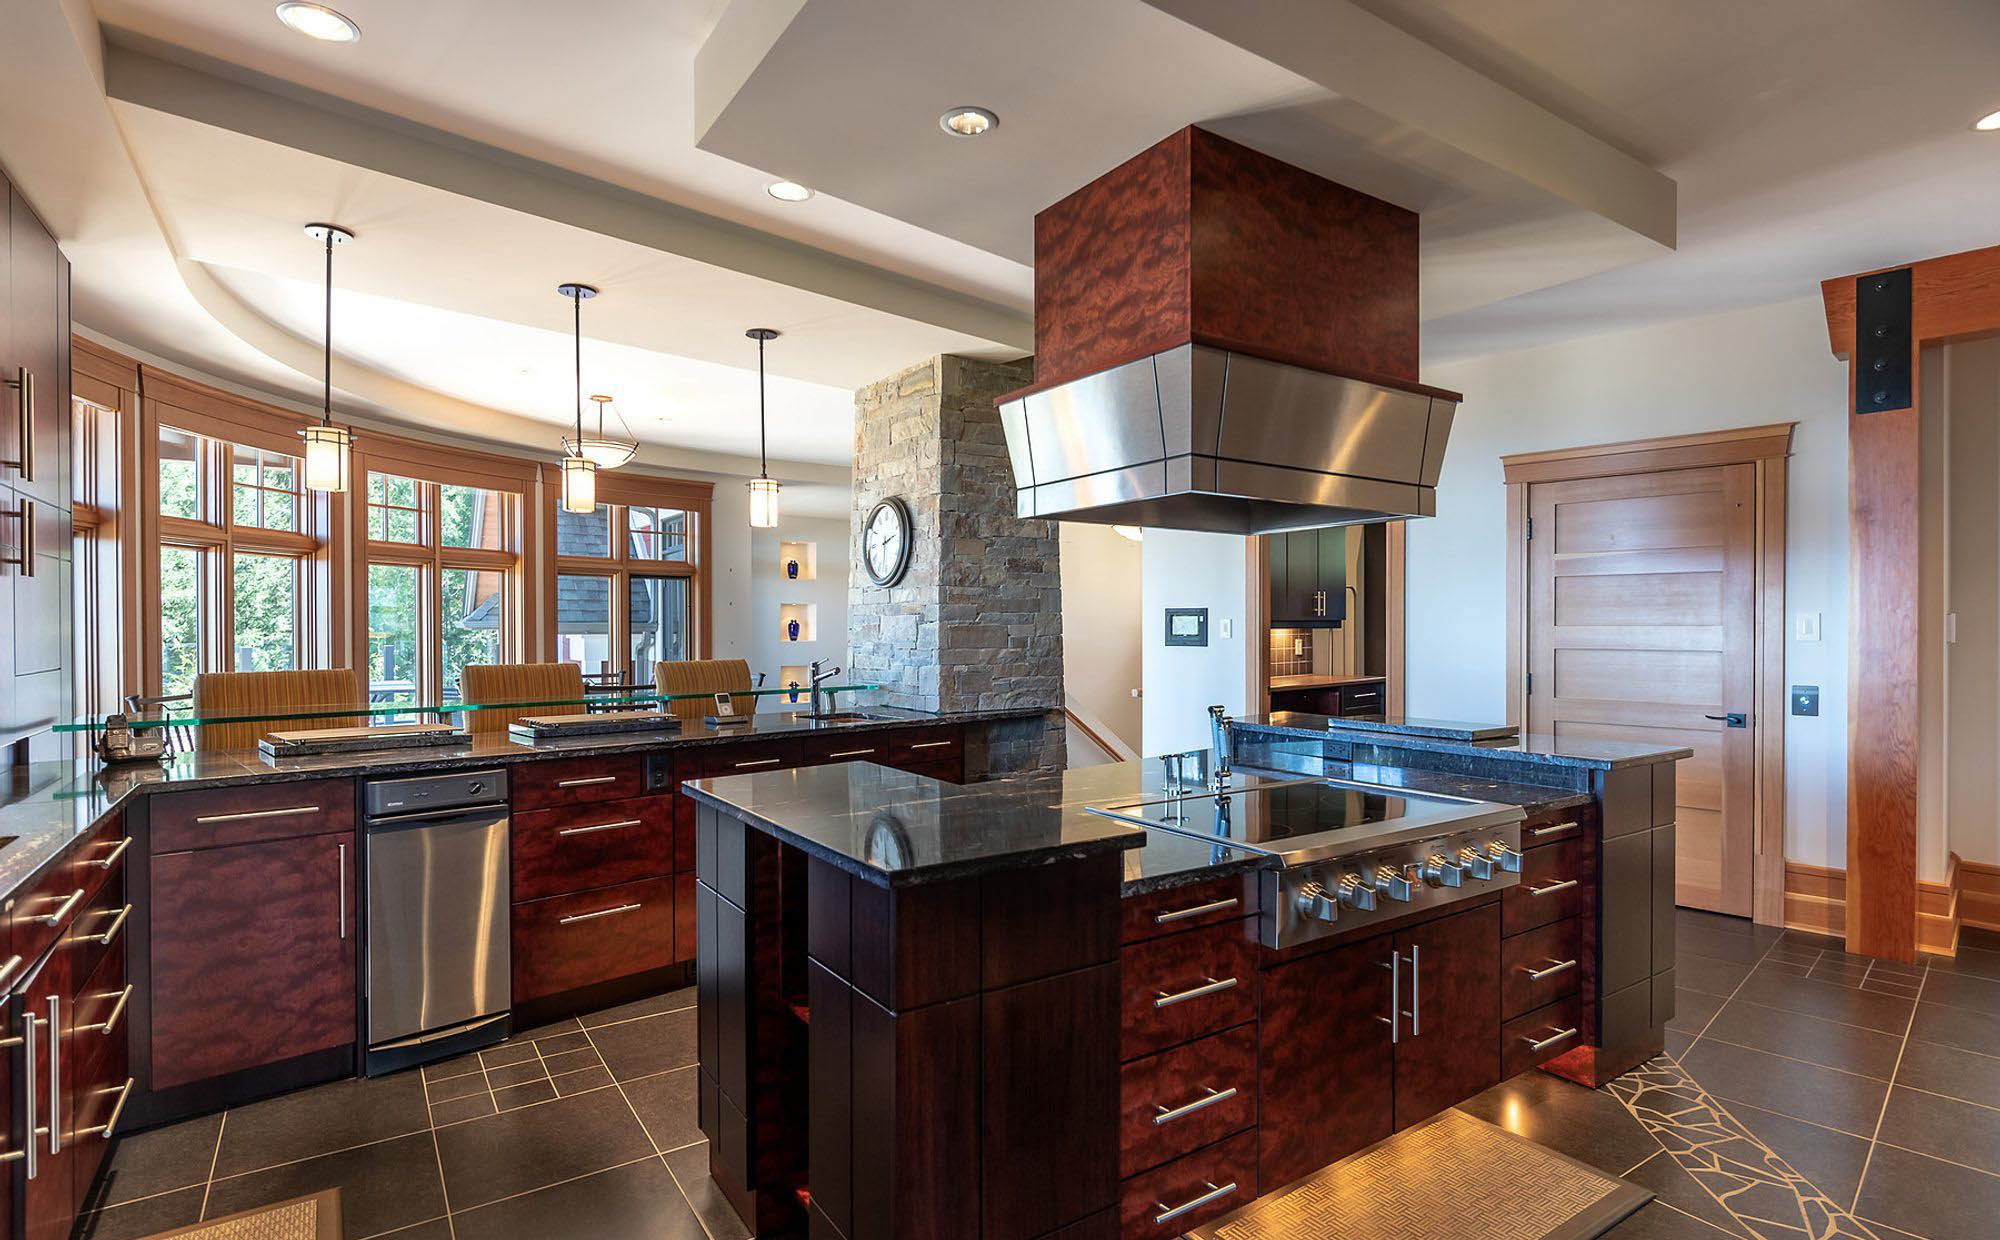 Modern rustic kitchen design with black granite countertops, rich reddish brown cabinets and stainless steel.